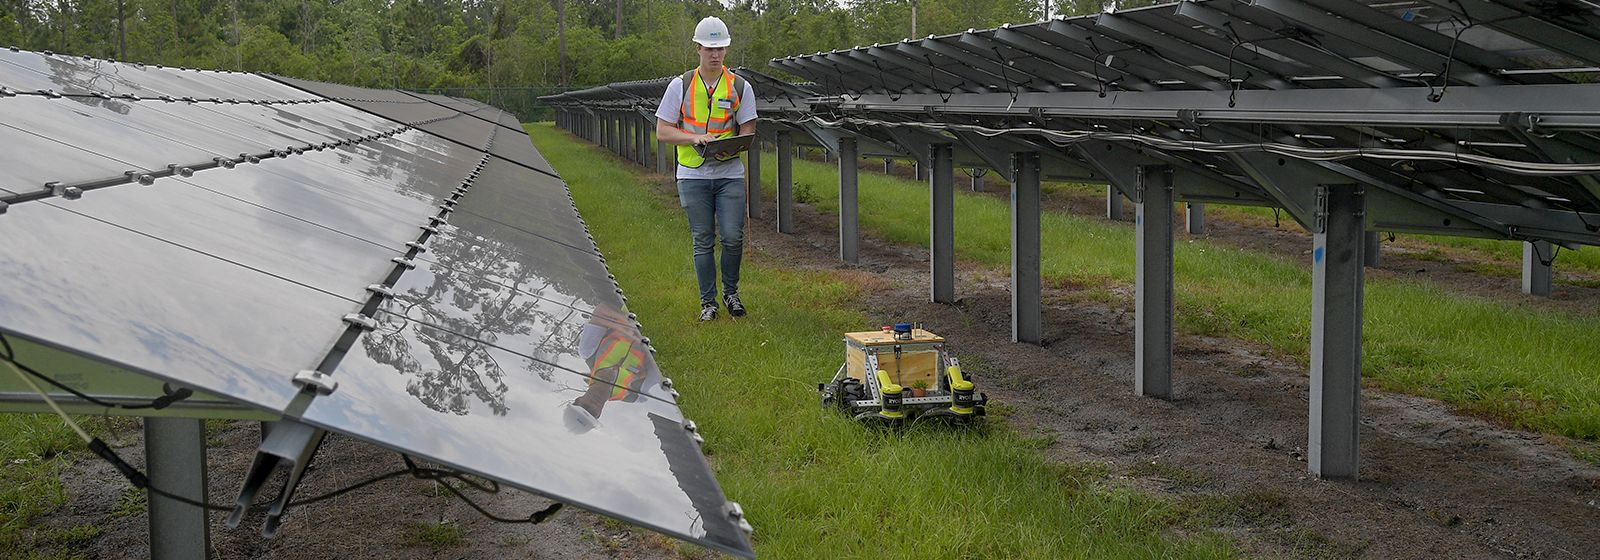 Innovation gets in the weeds under solar panels